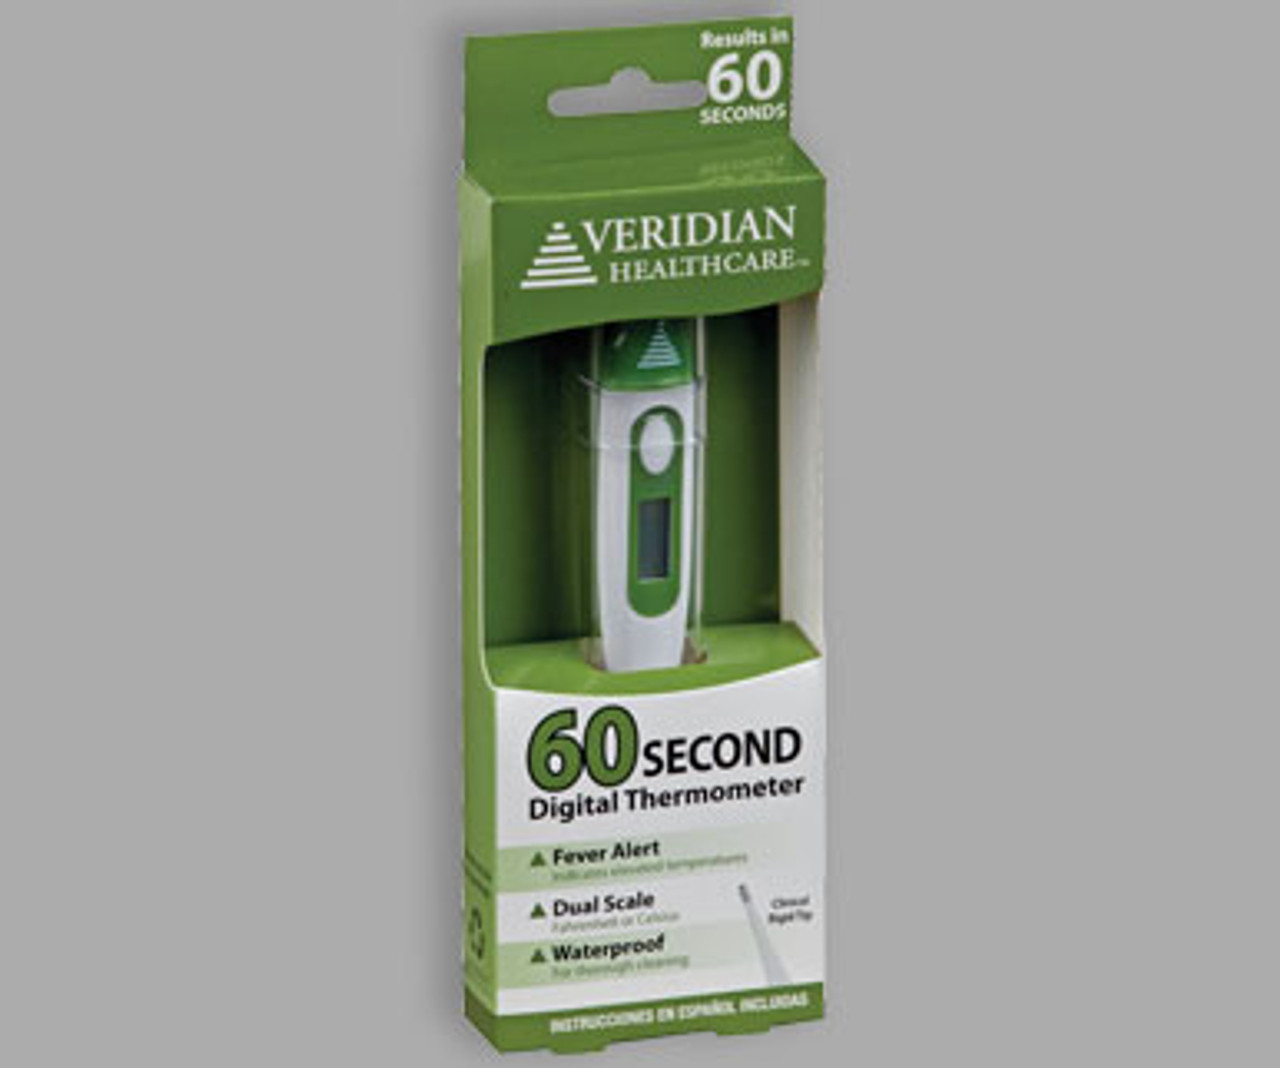 Veridian Healthcare 60 Second Digital Thermometer 08-352